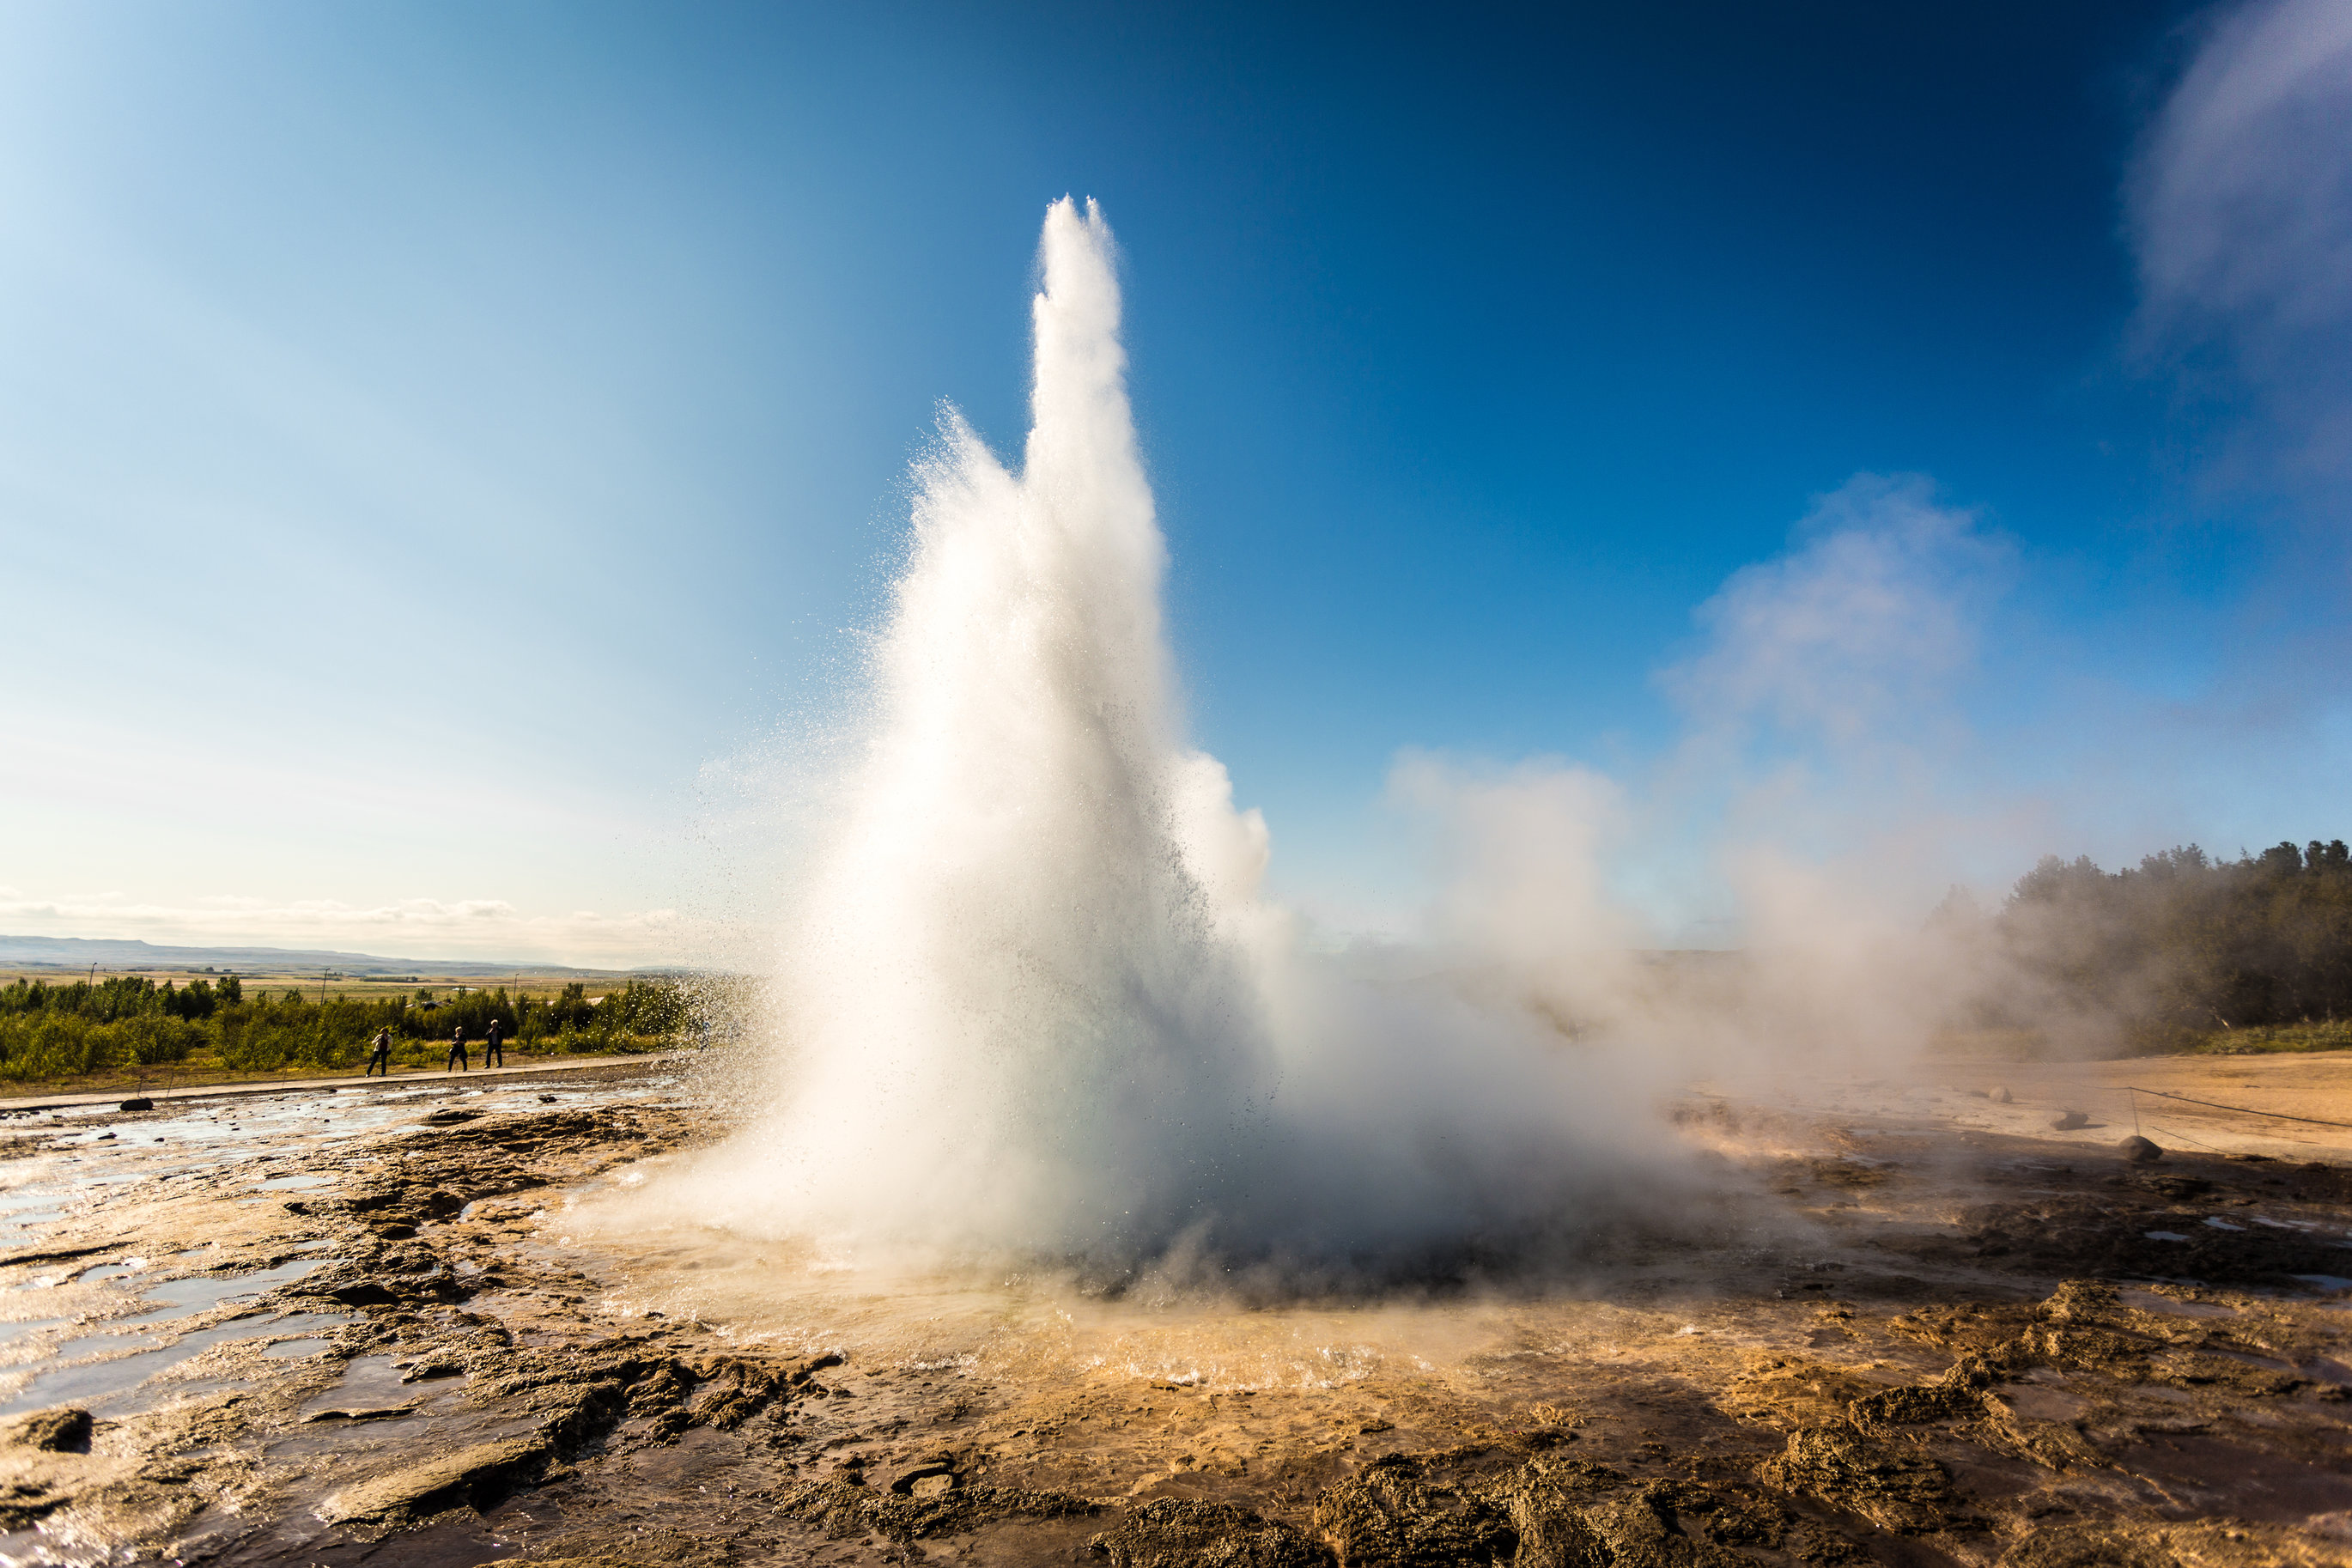 here you see the geyser Strokkur of the Golden Circle erupting boiling water from beneath the Earth.